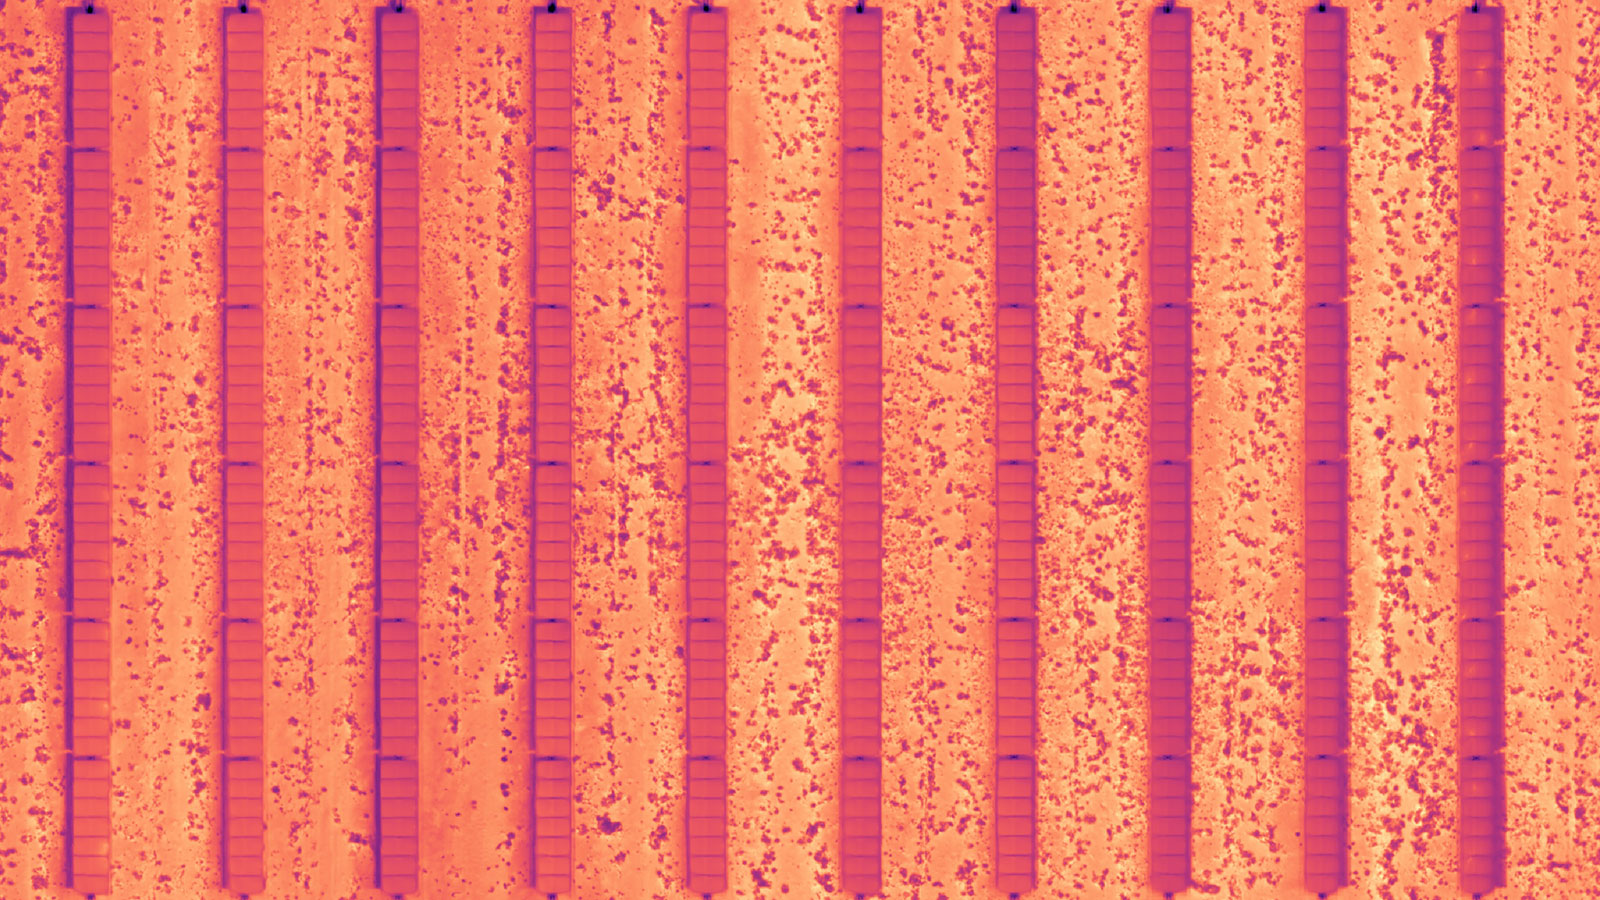 Thermal image of rows of solar panels